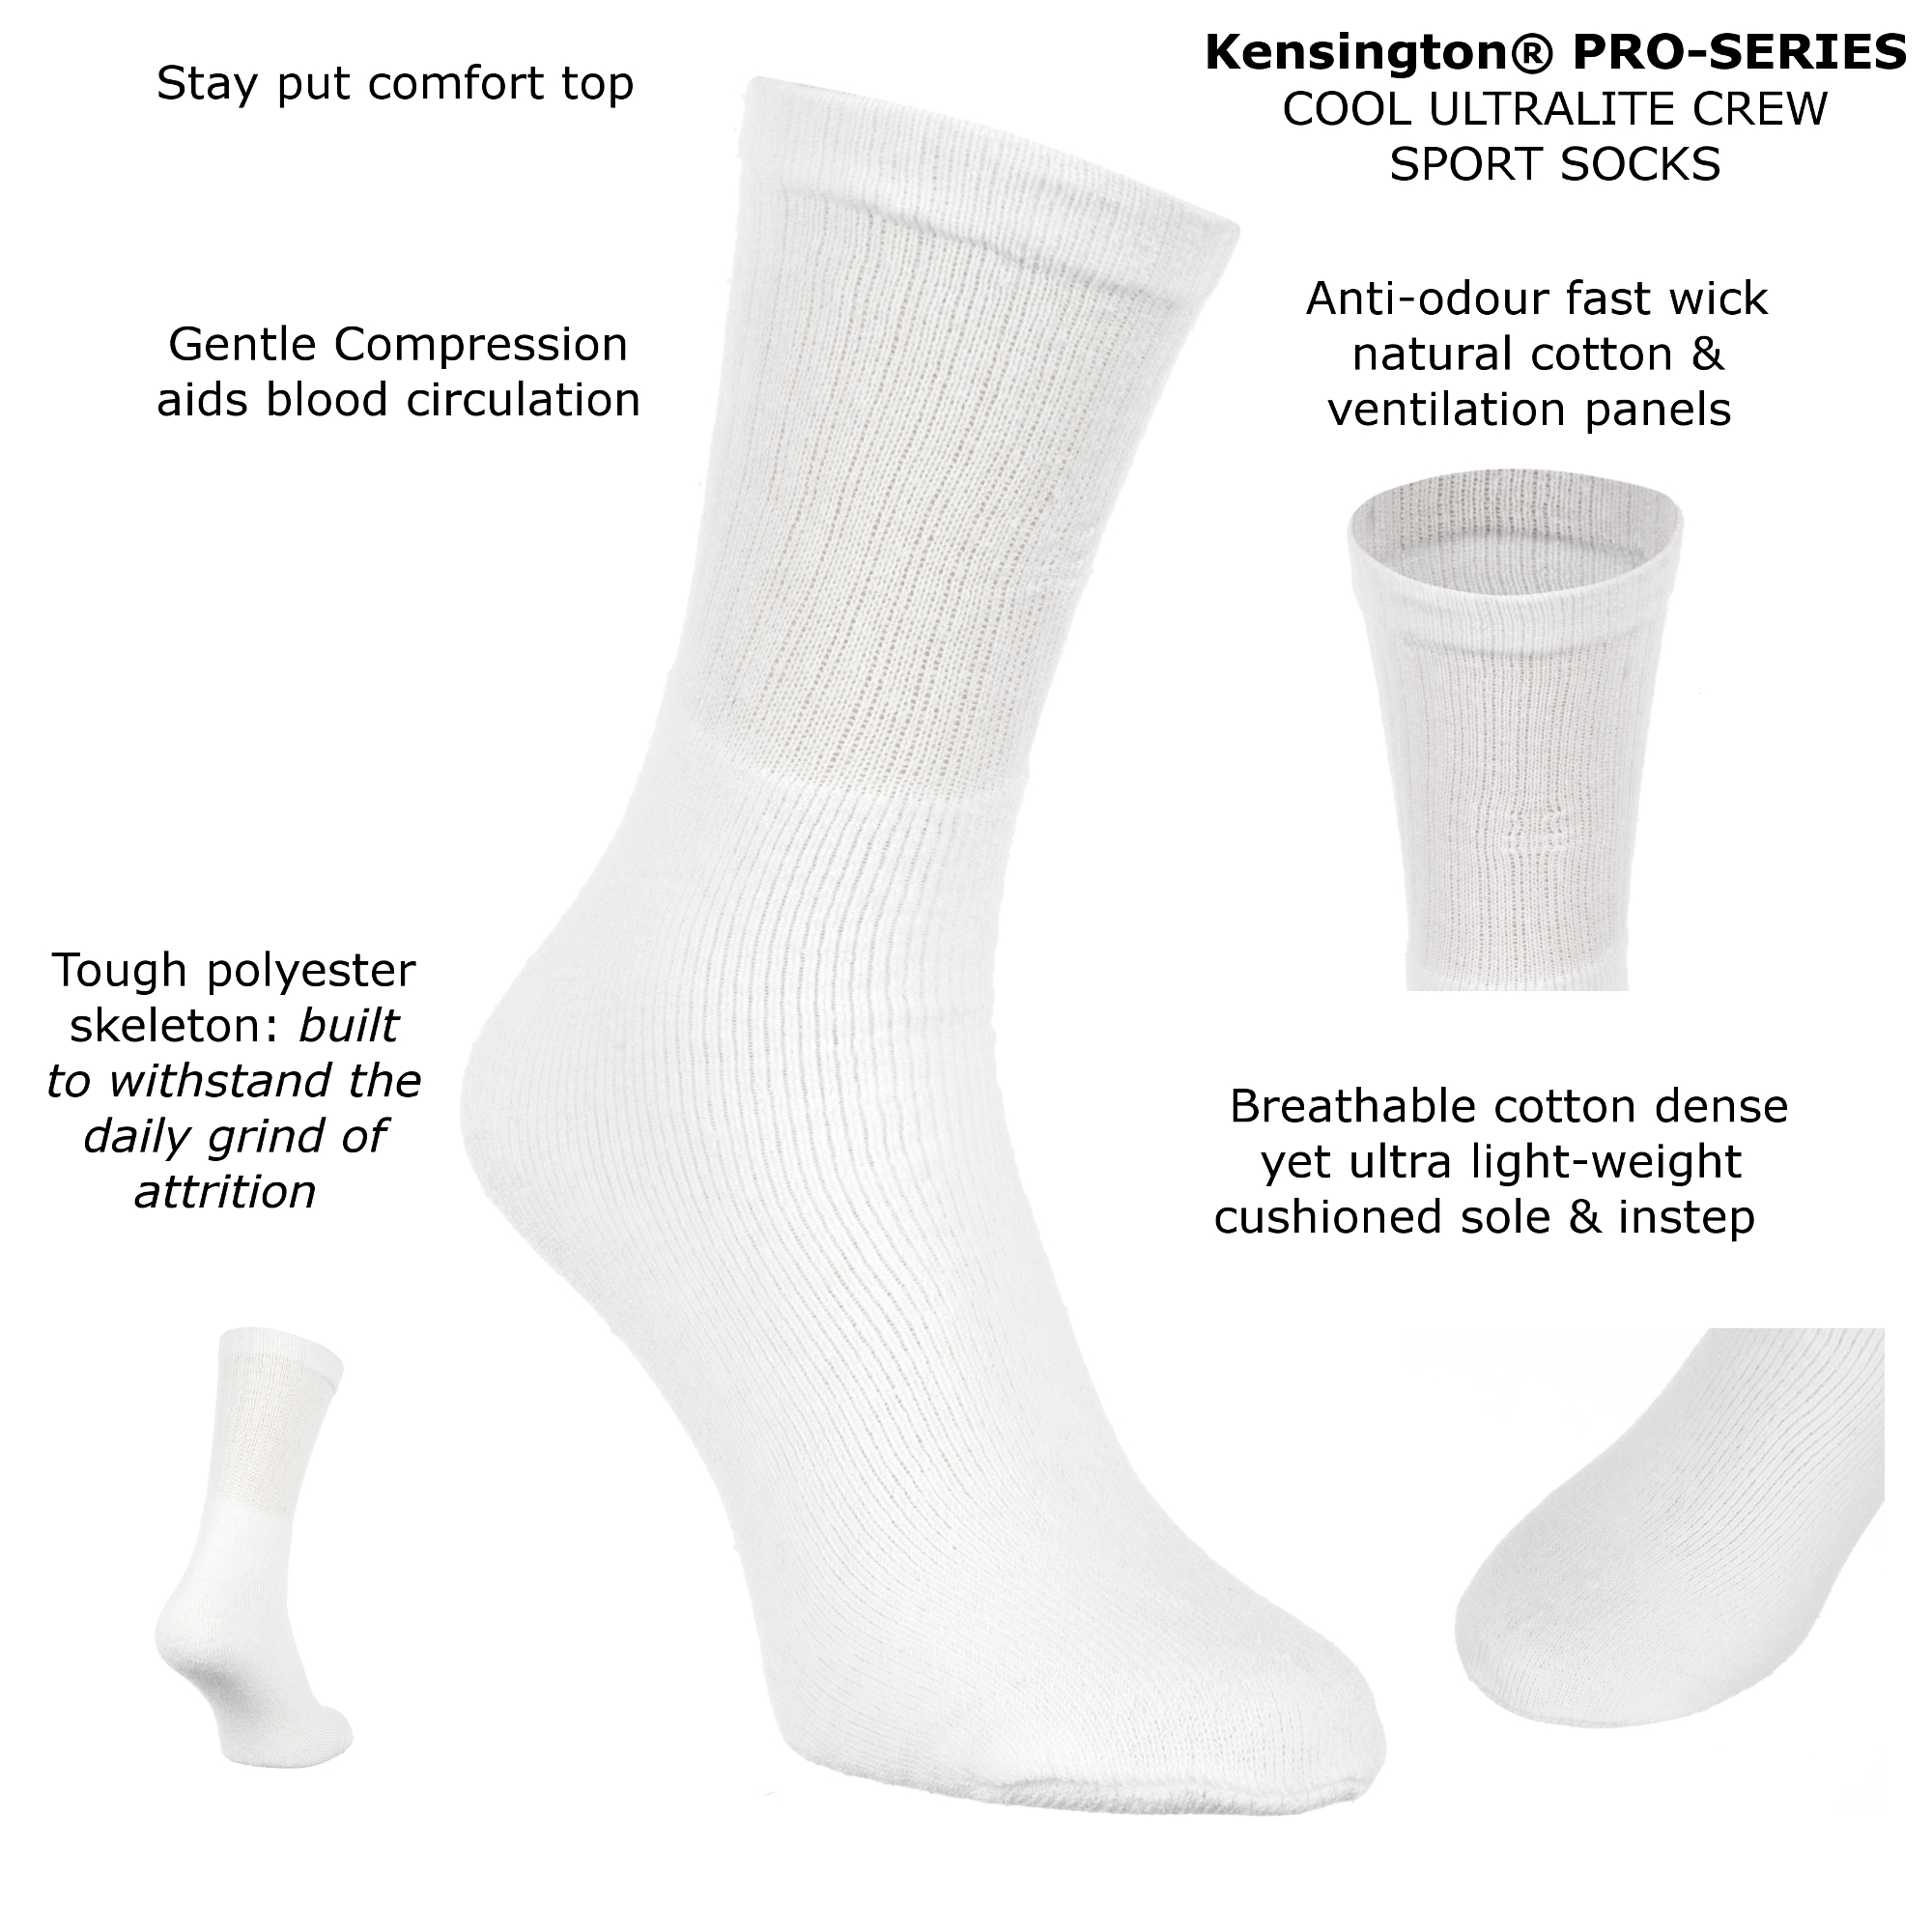 Kensington Sports Socks